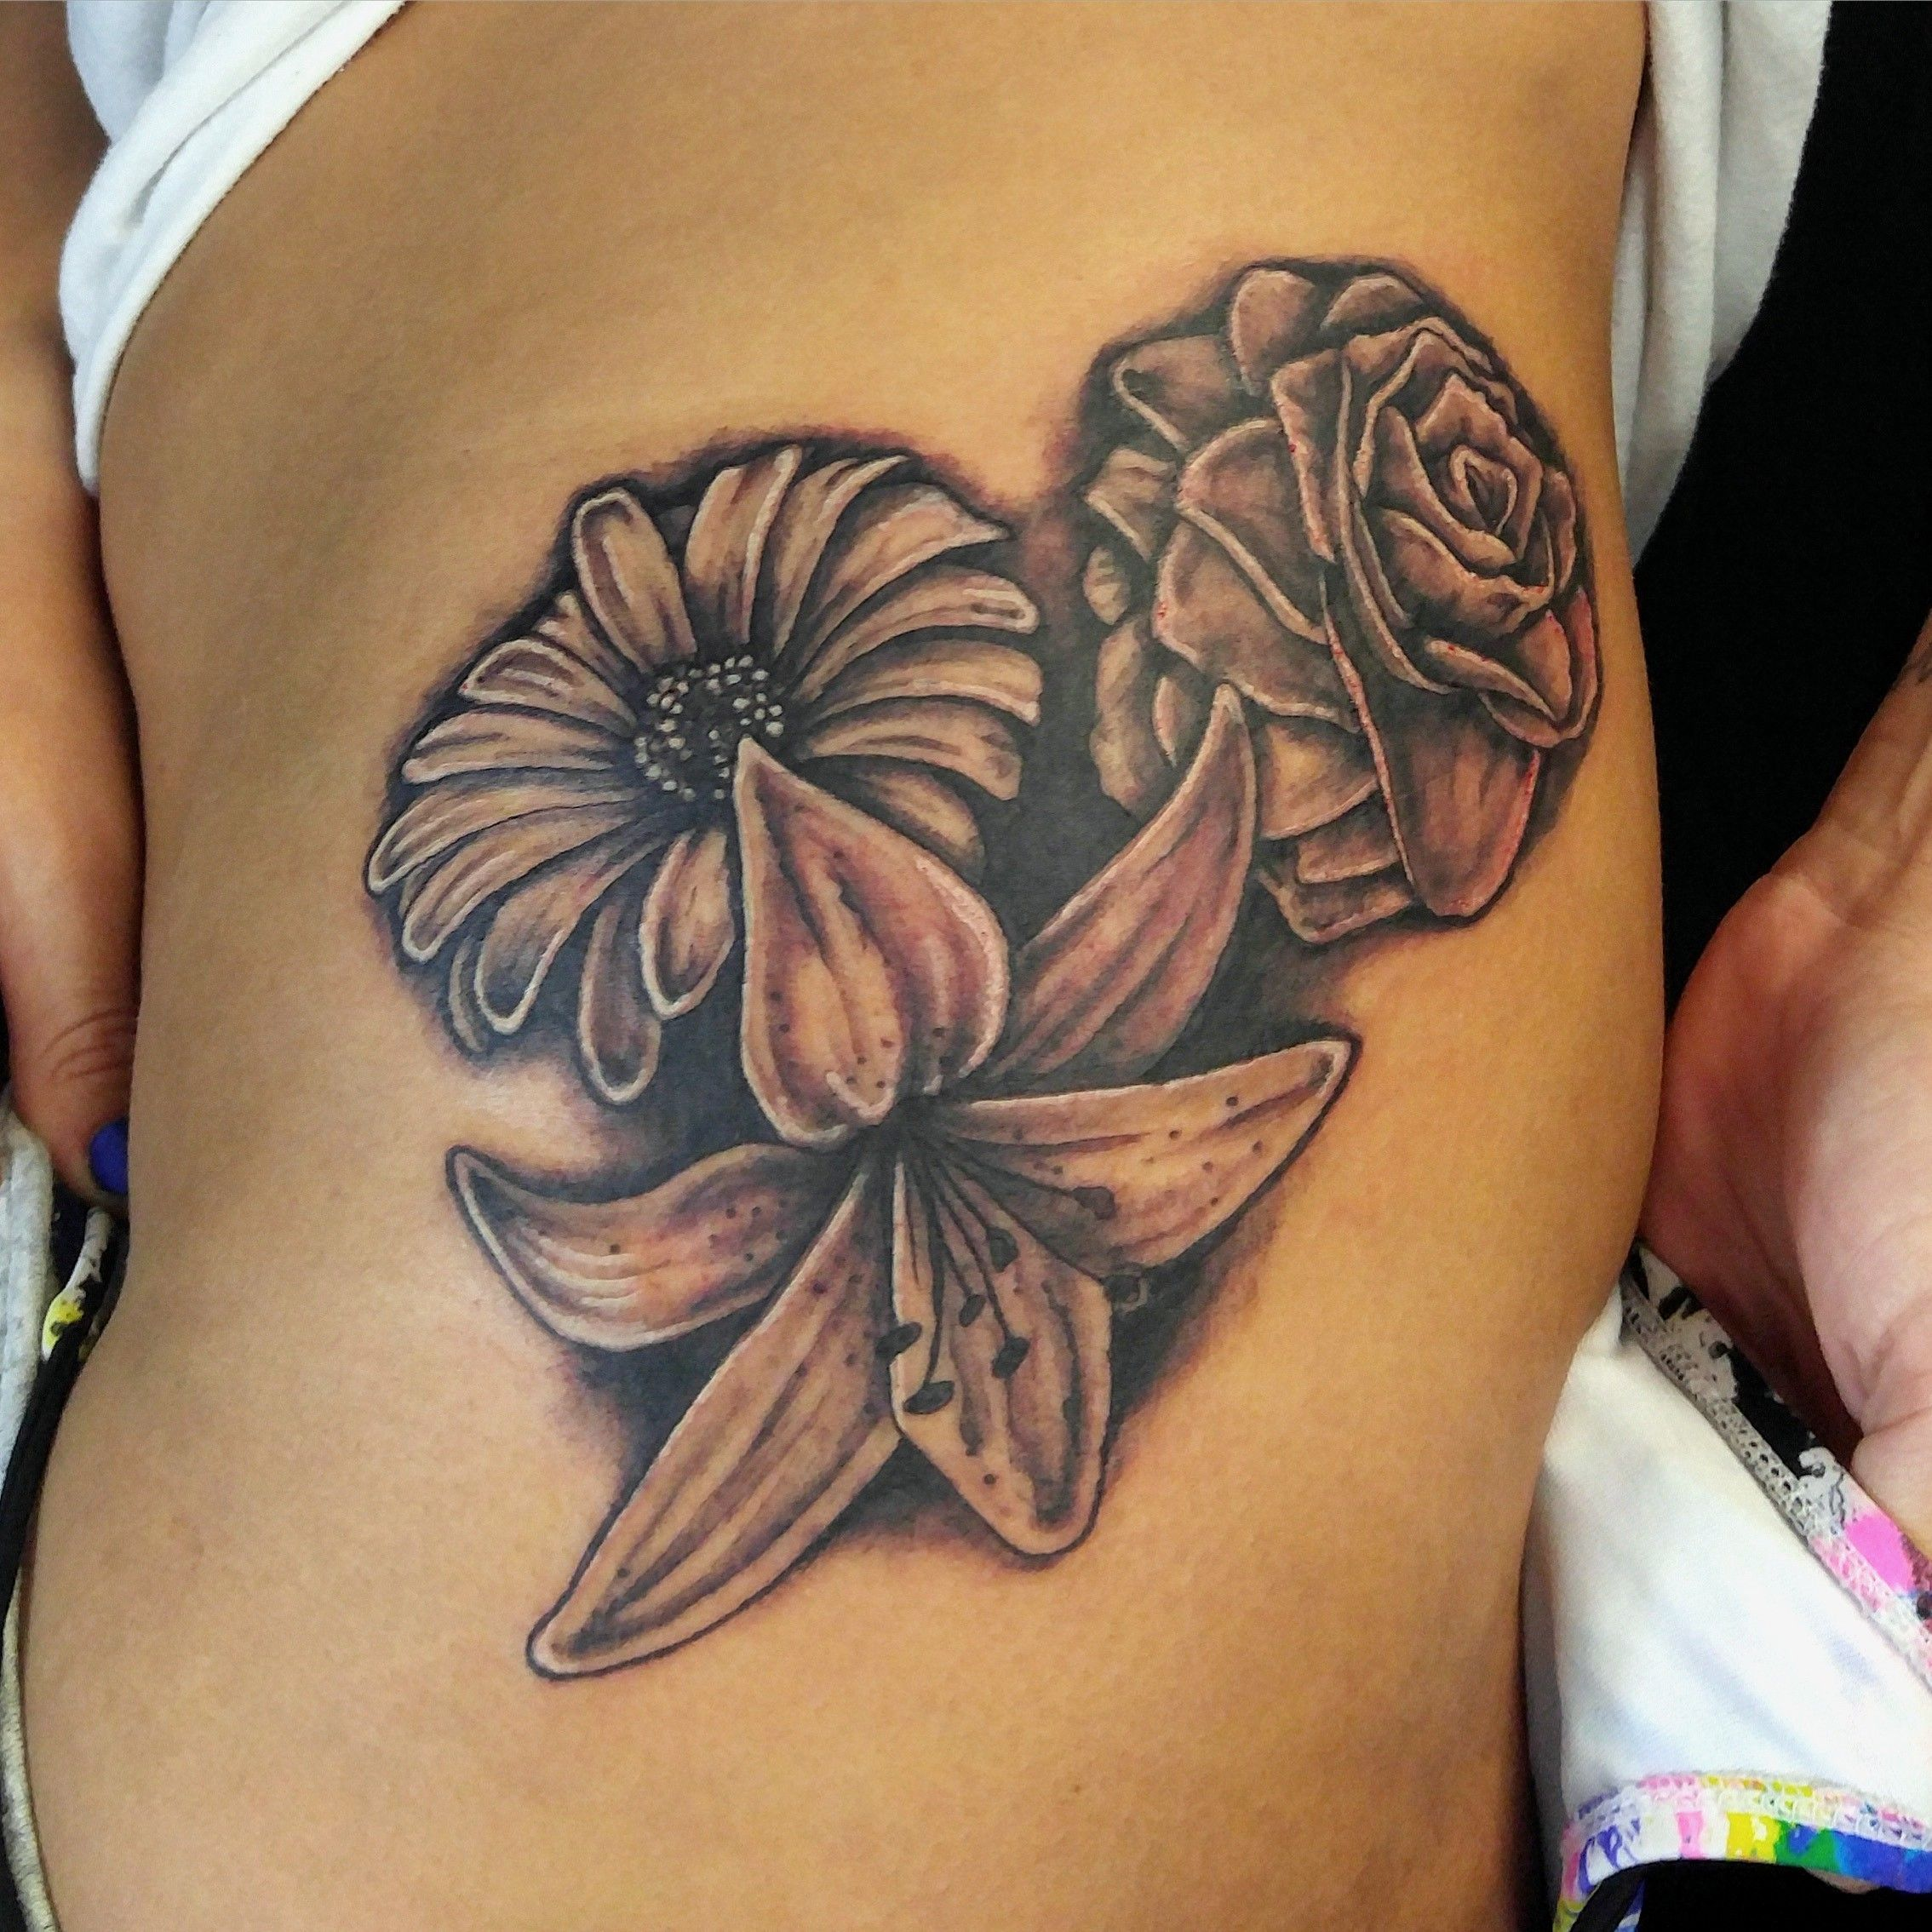 rose lily daisy tattoo by mike hessinger at moonlight tattoo seaville nj moonlight tattoos. Black Bedroom Furniture Sets. Home Design Ideas